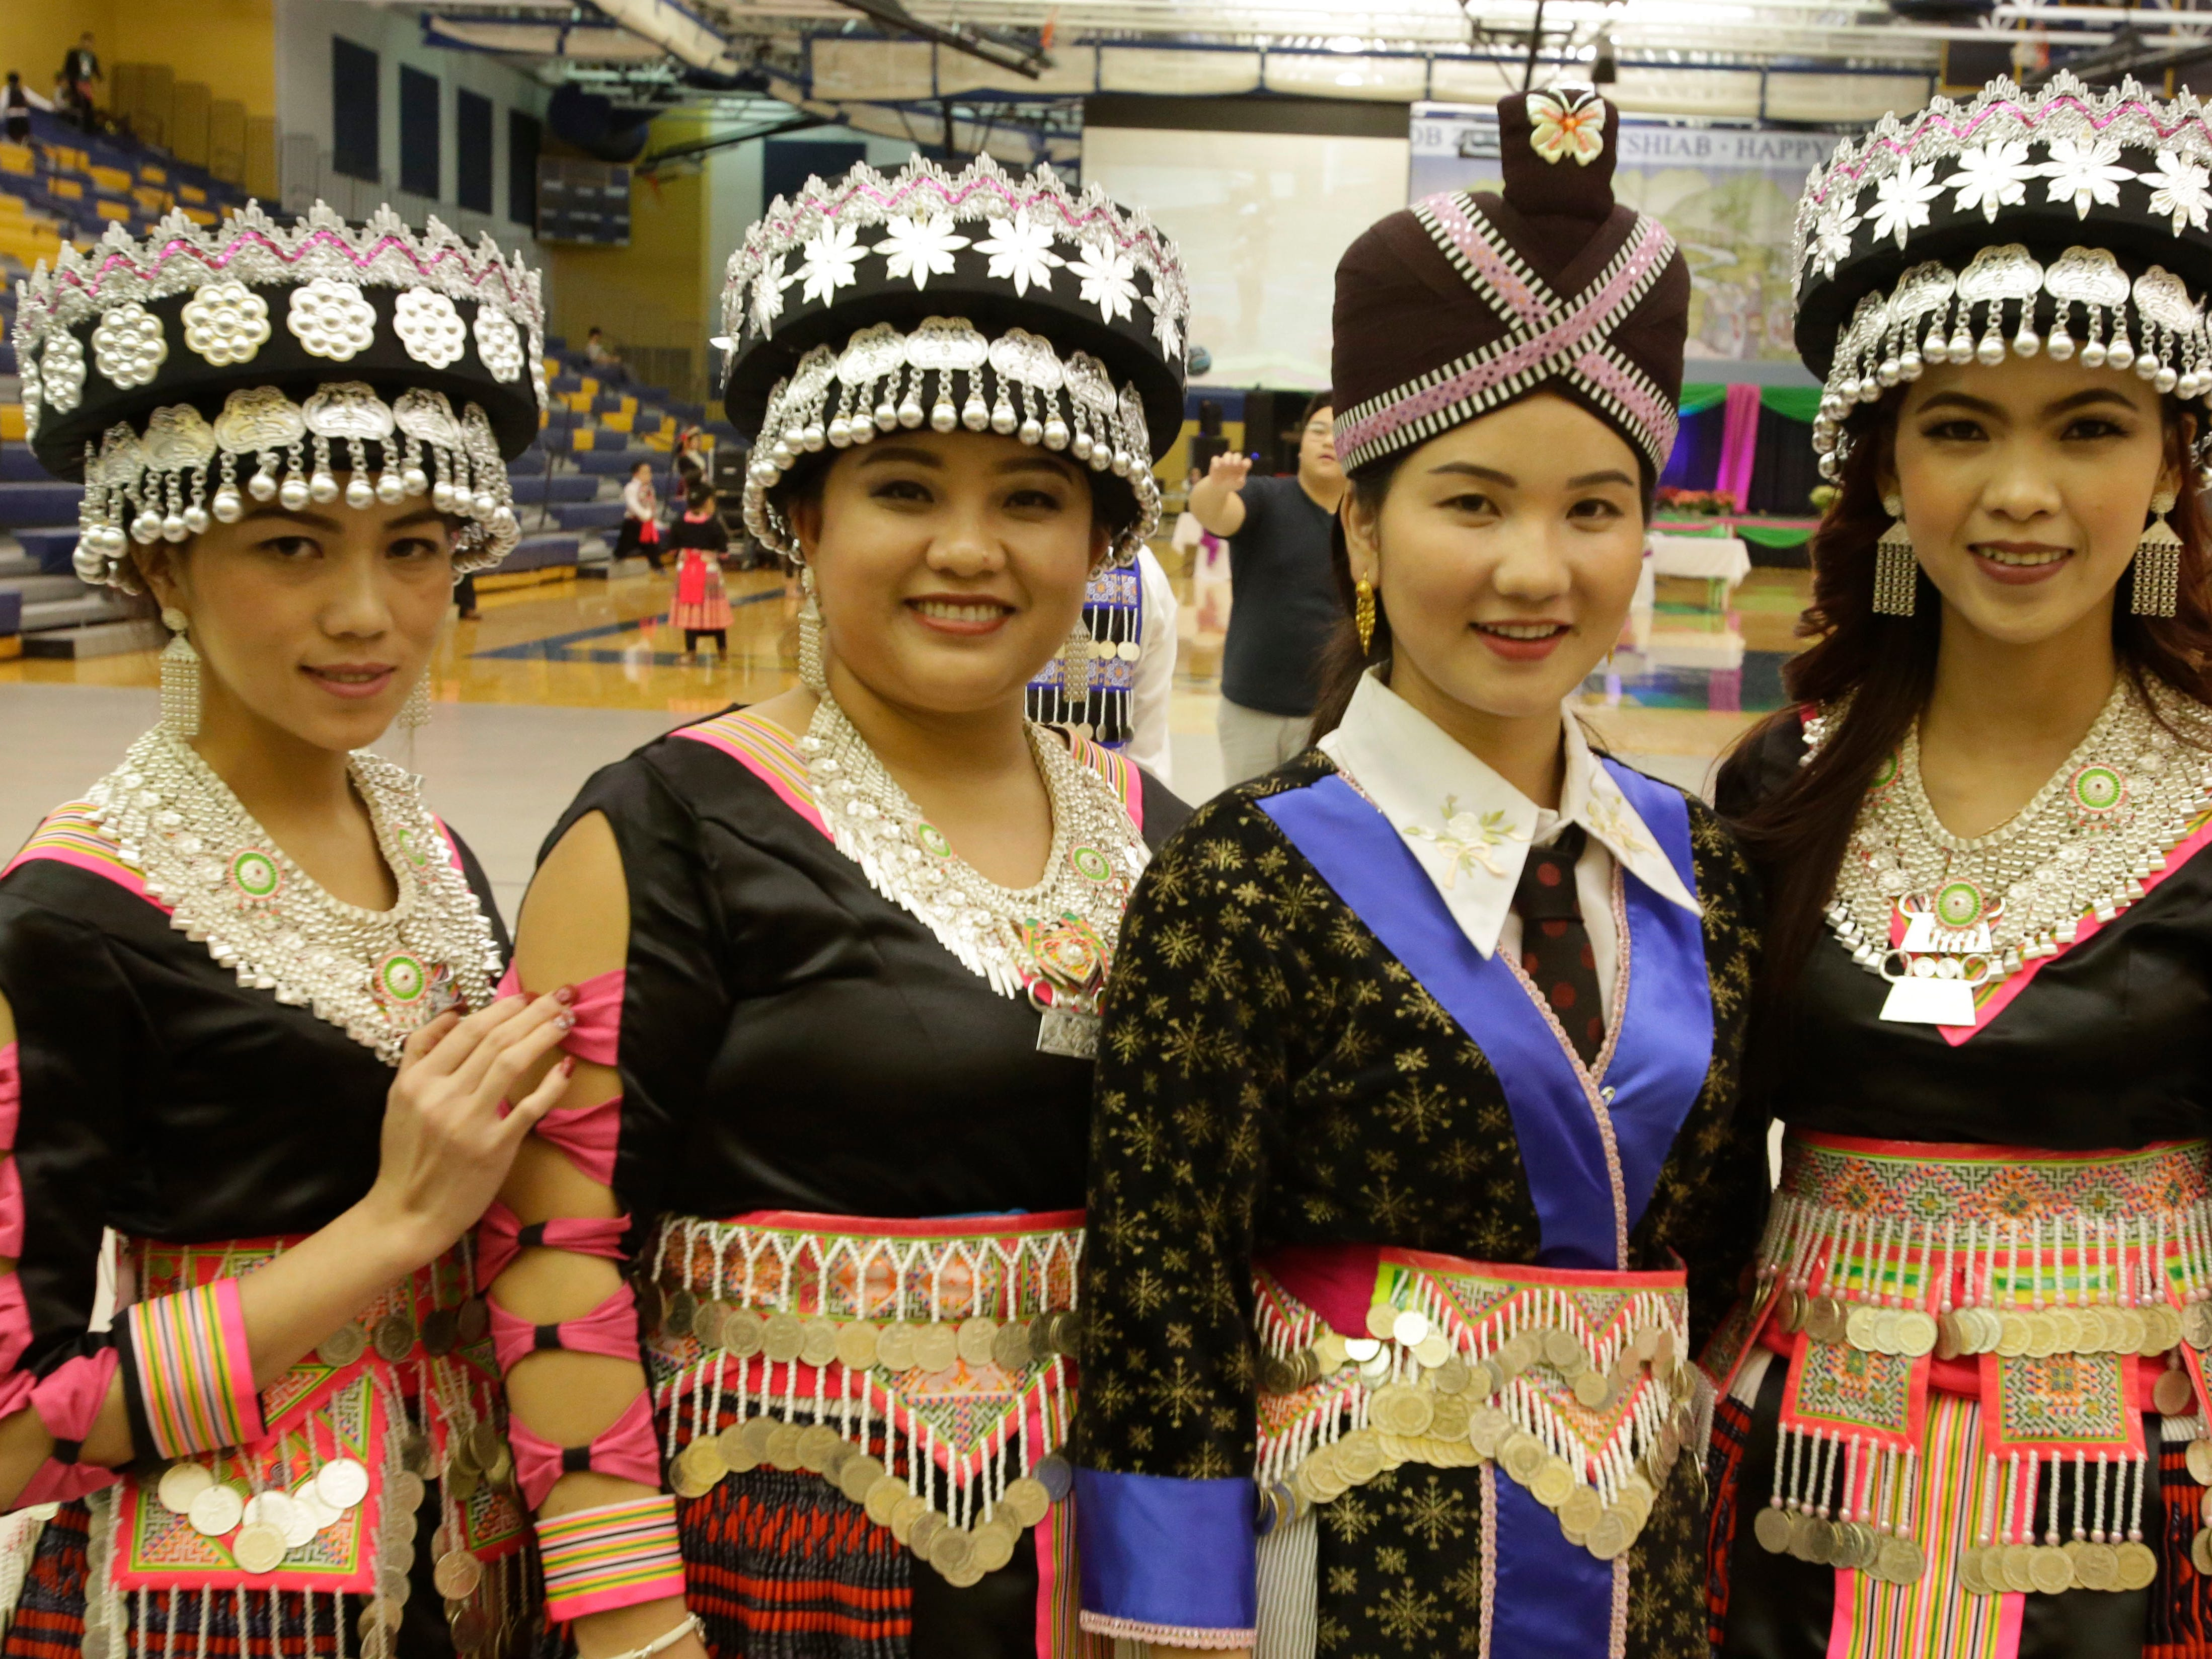 A quartet of young Hmong women pose for a photo at the Hmong New Year observance at Sheboygan North High School, Friday, November 23, 2018, in Sheboygan, Wis.